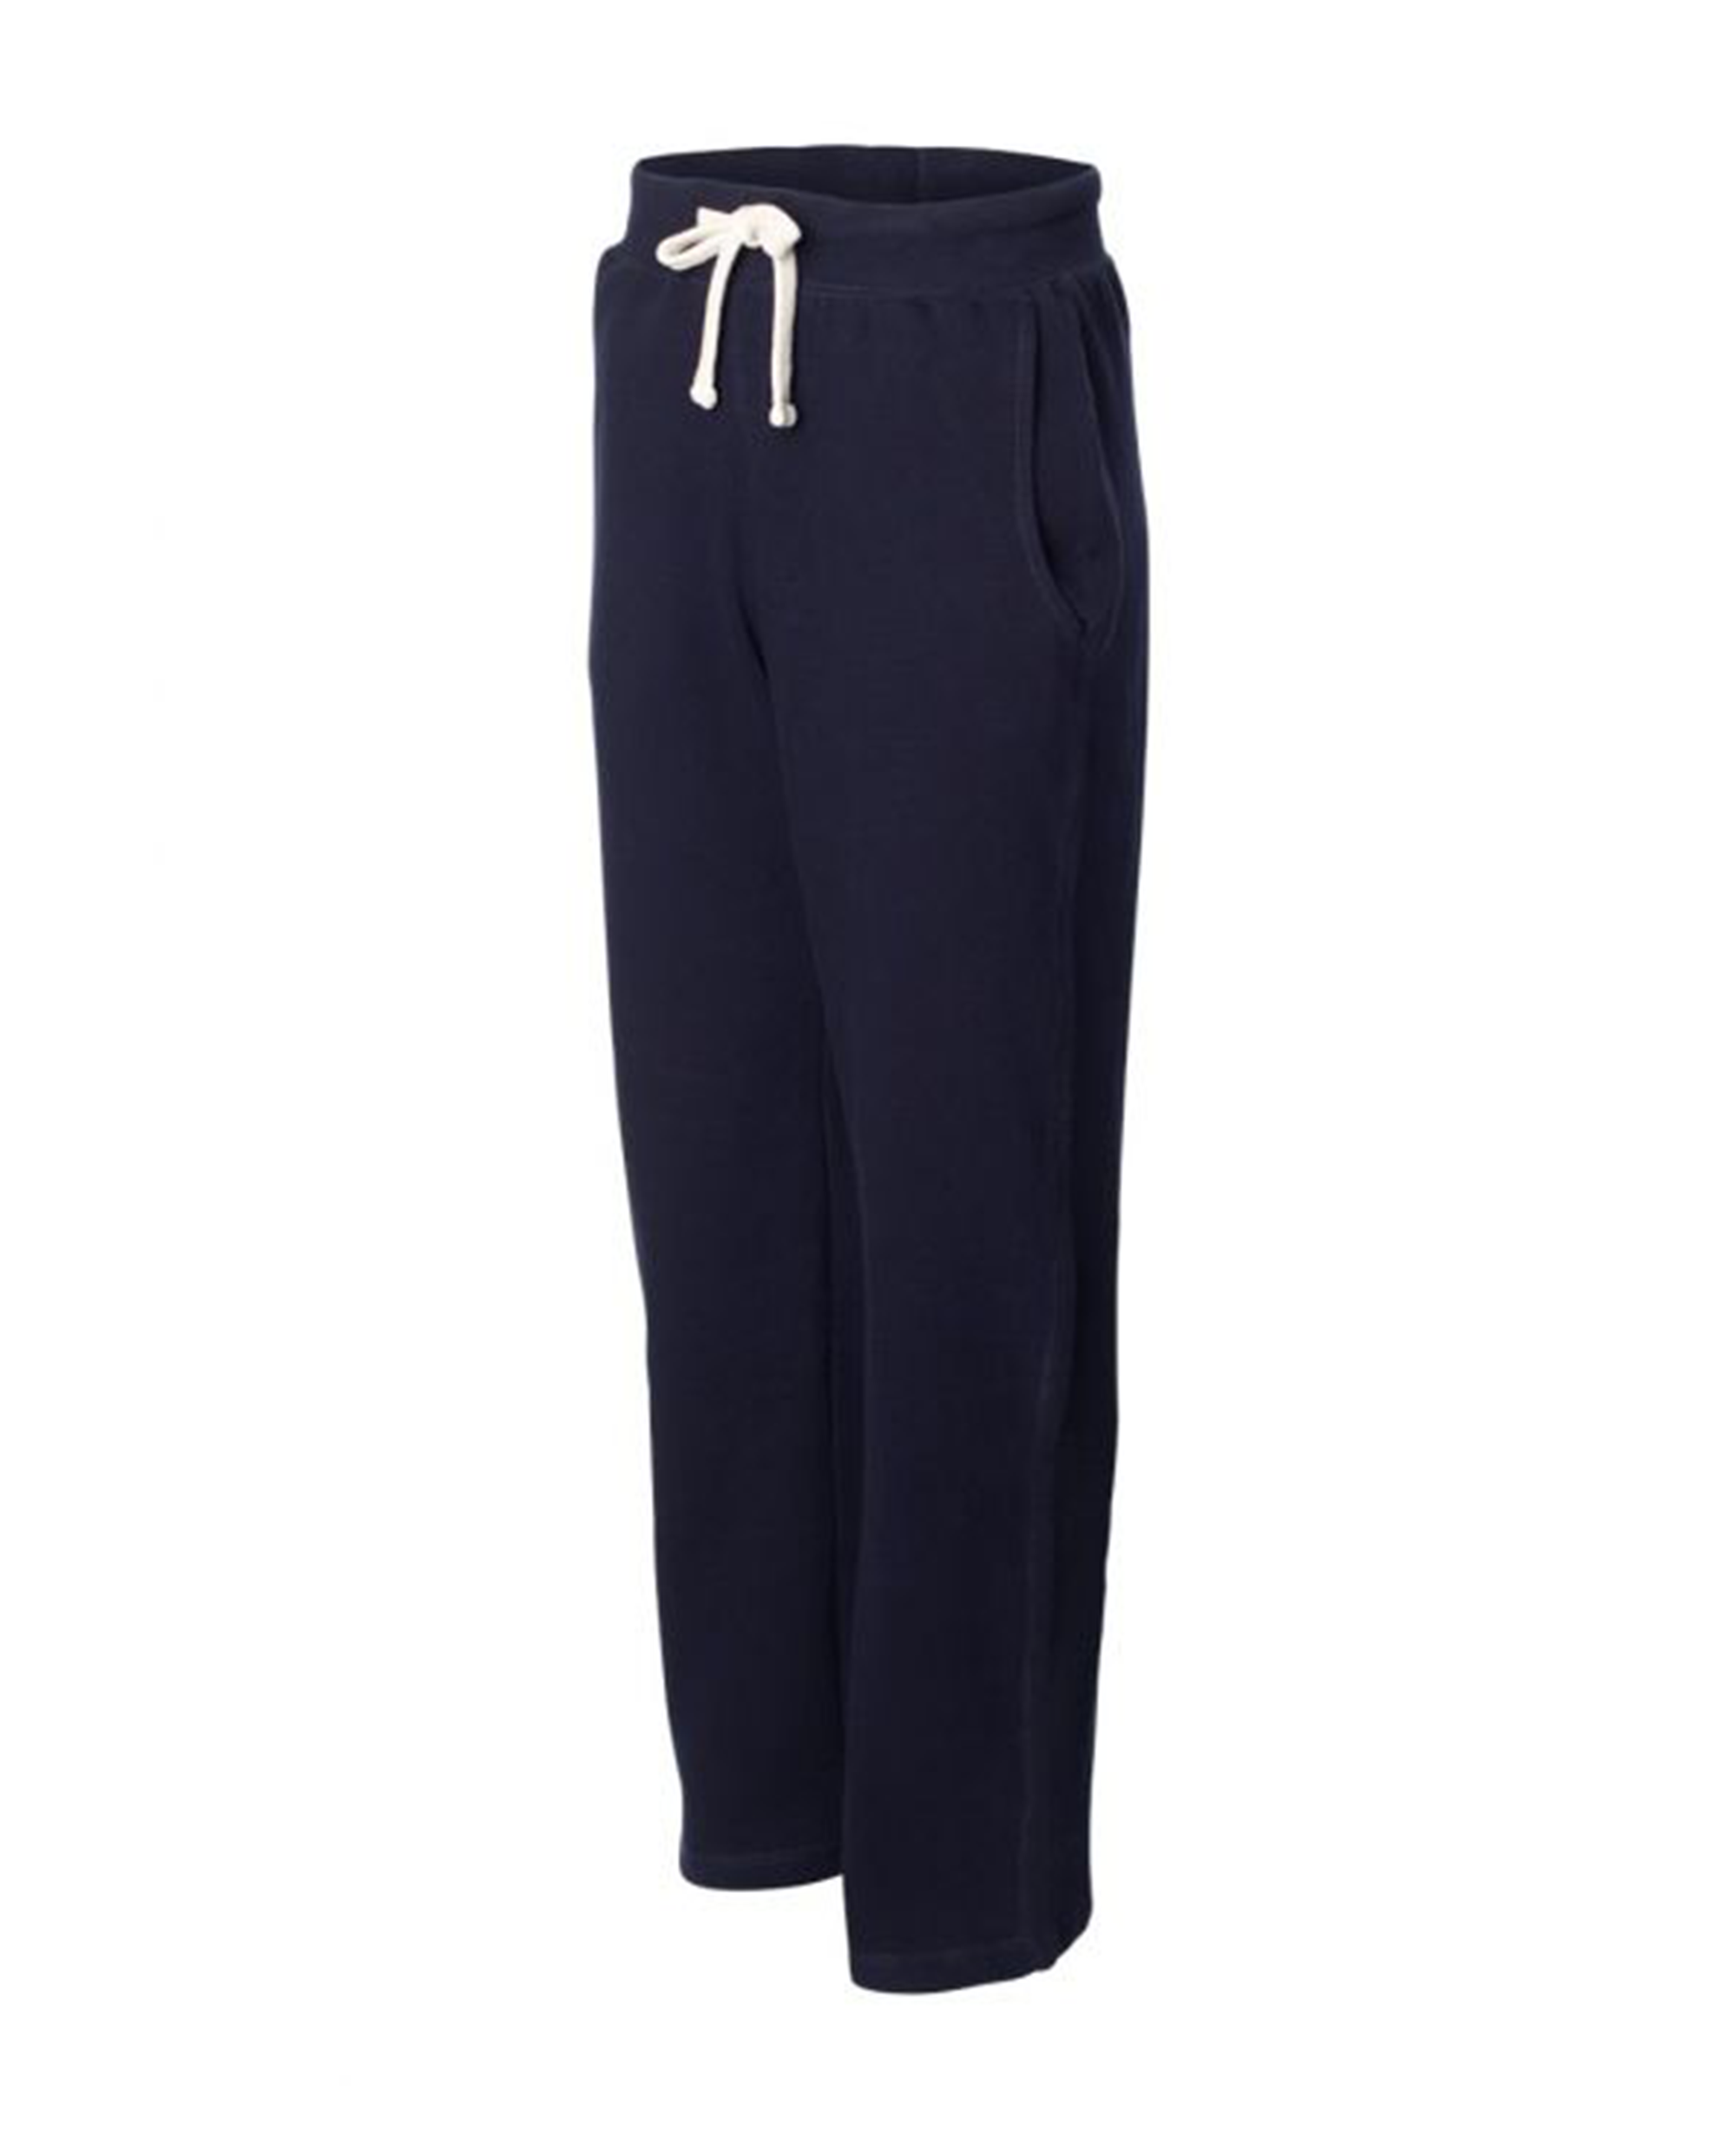 Adult Relaxed Pants in Navy - Pants - Weatherproof - BRANMA